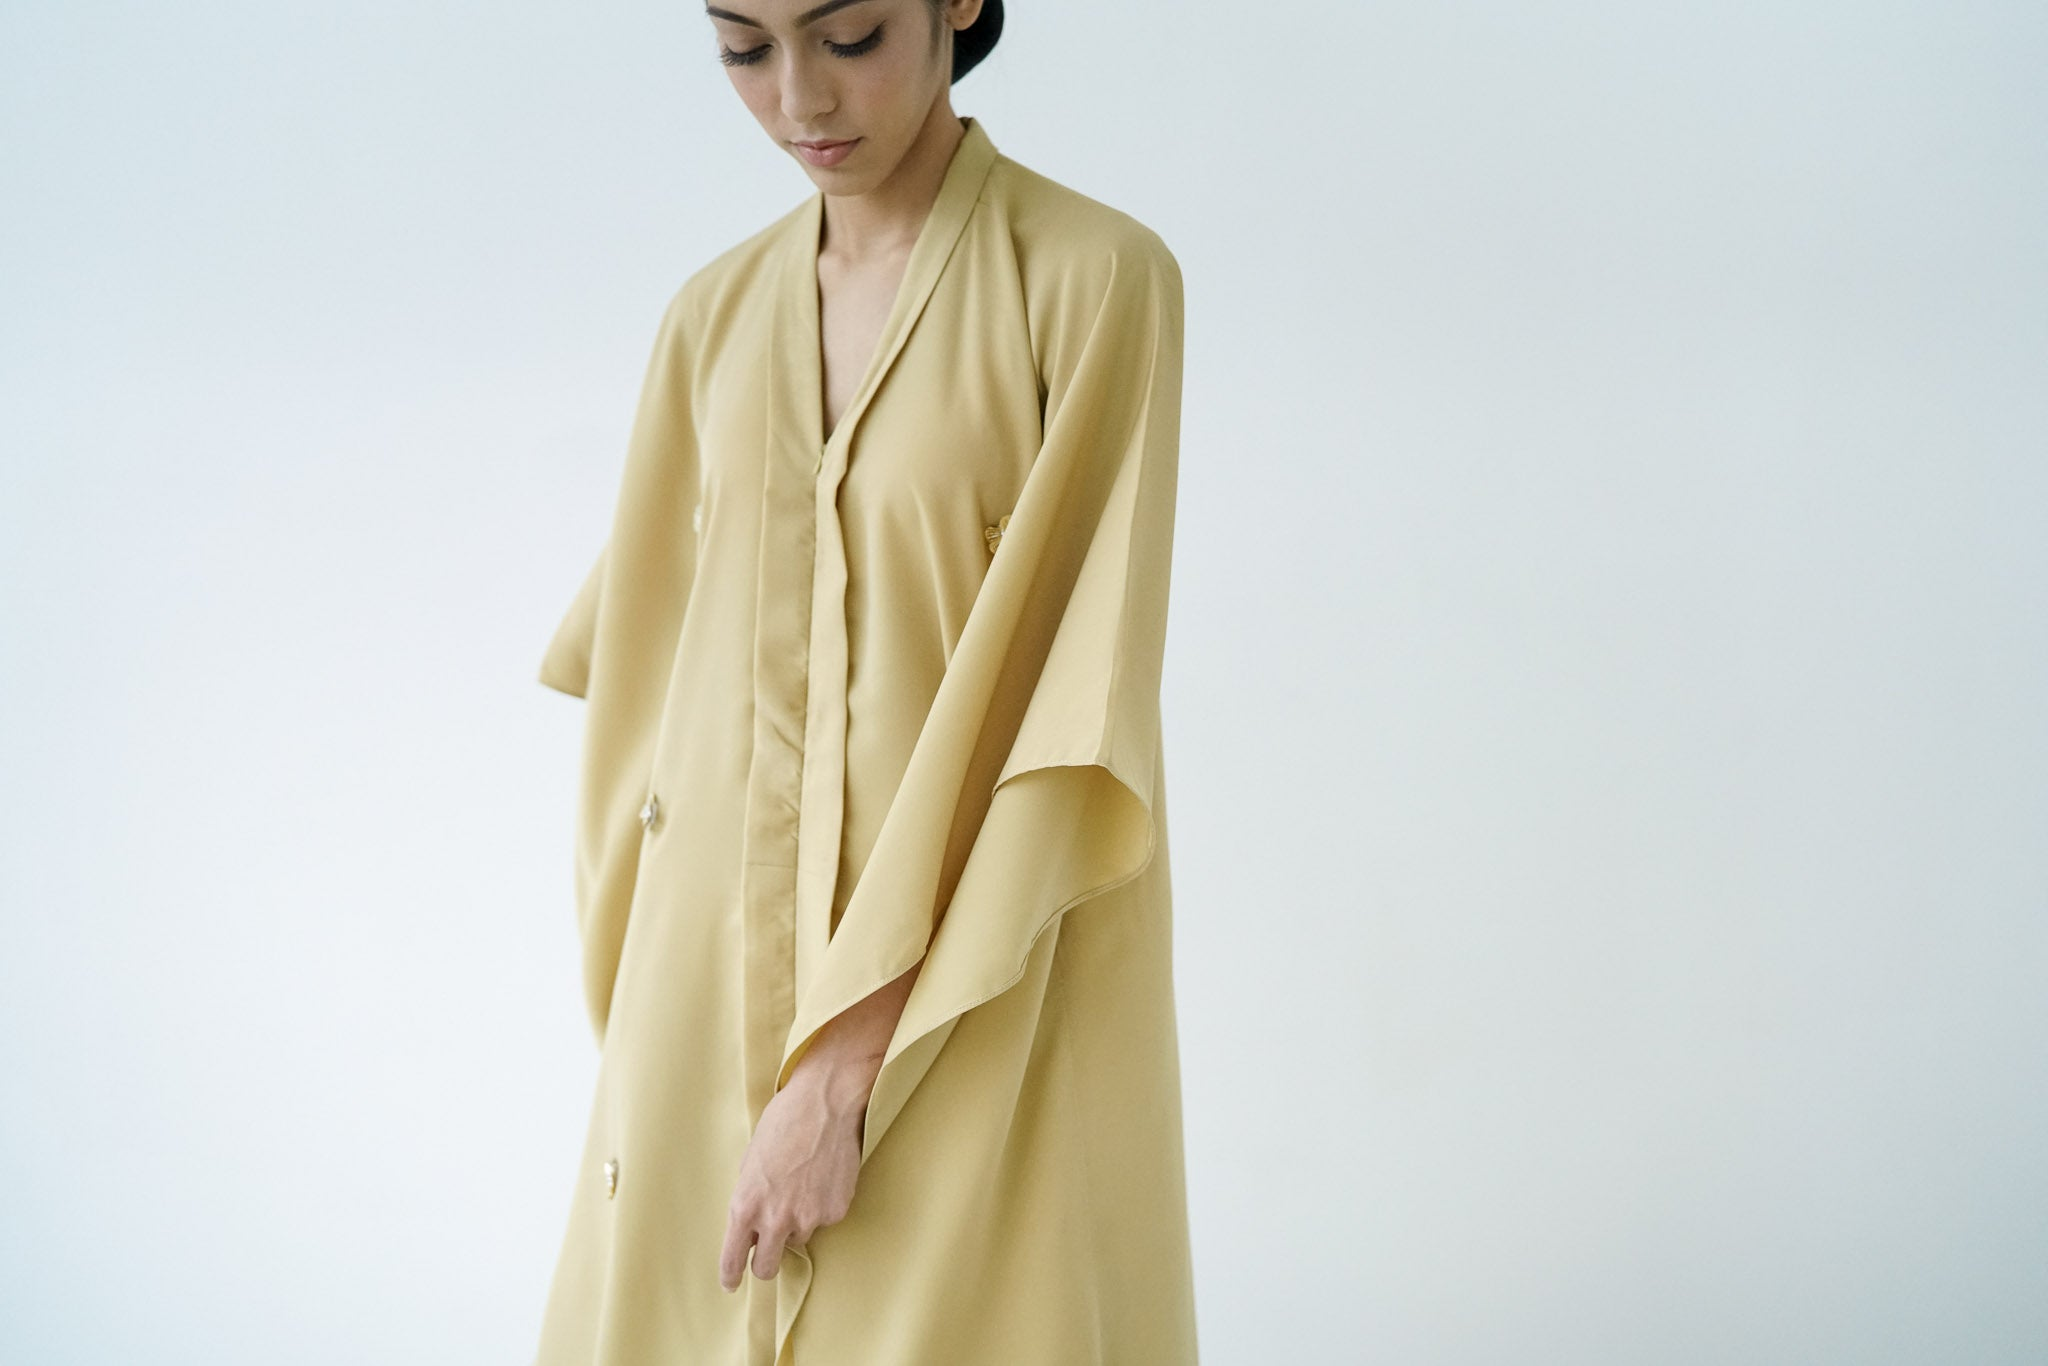 Kafaya in PASTEL OLIVE GREEN